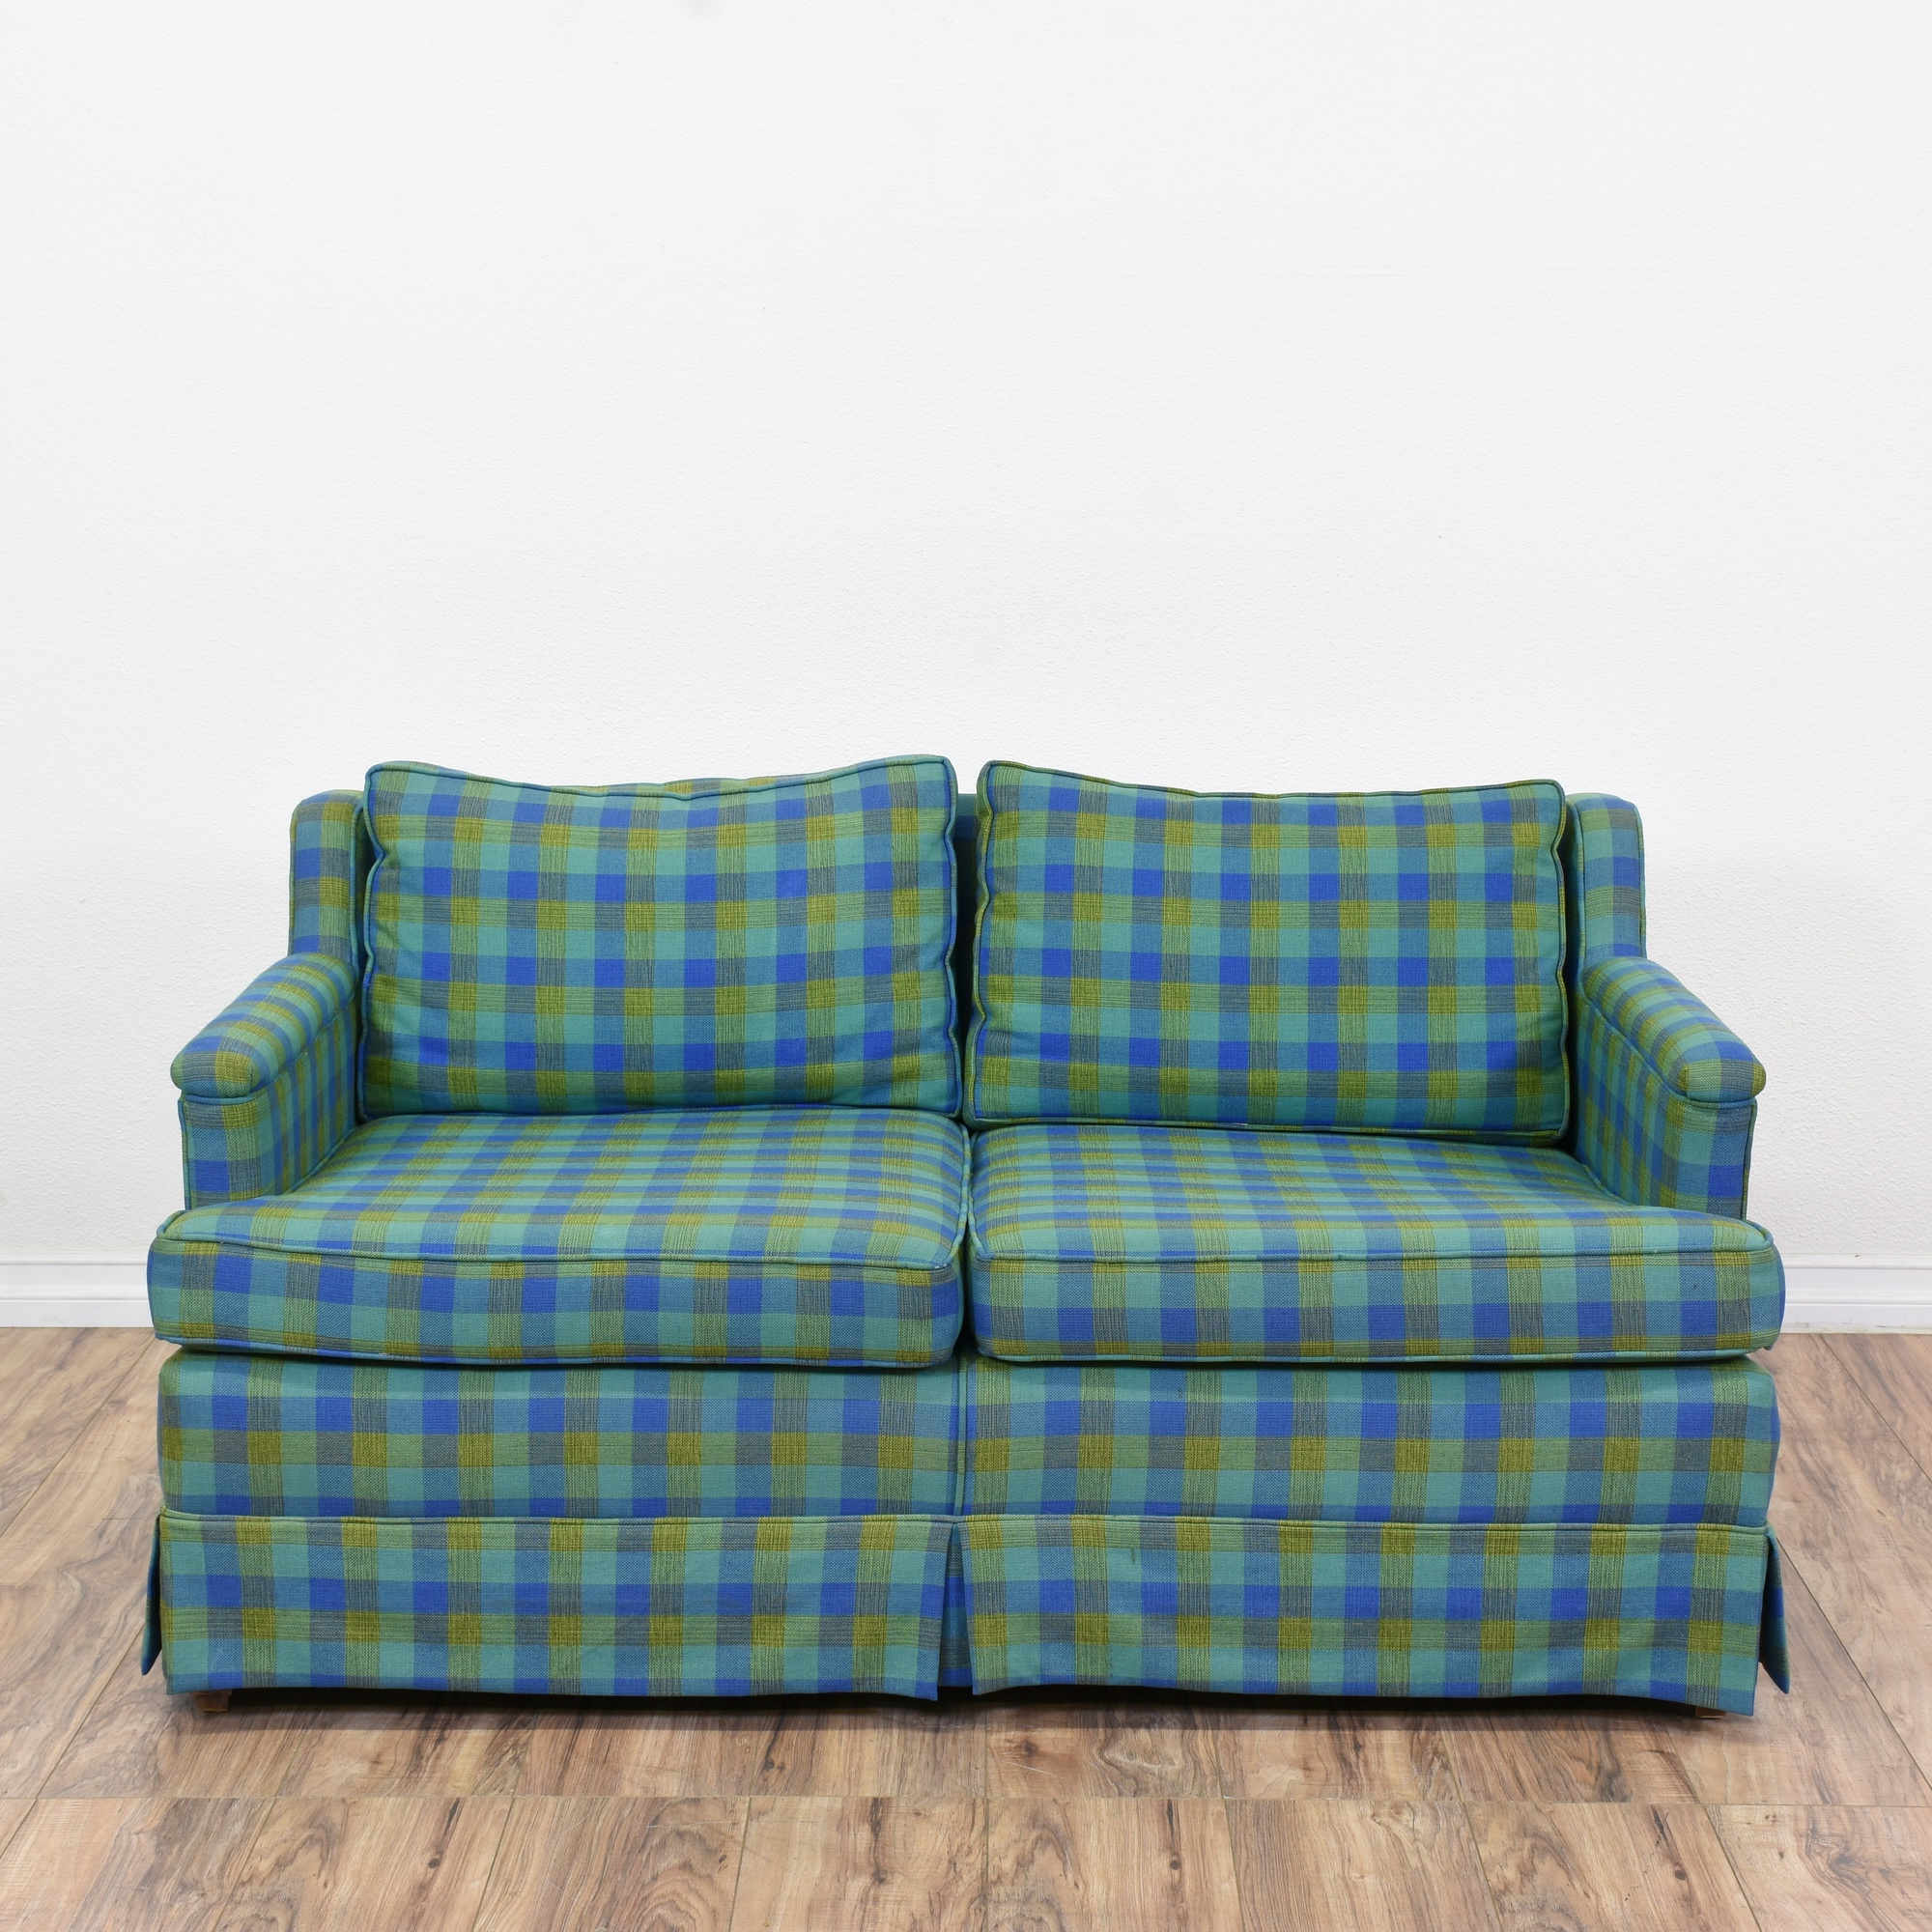 Green Plaid Sofa 281a Lazy Boy Country Green Plaid Sofa